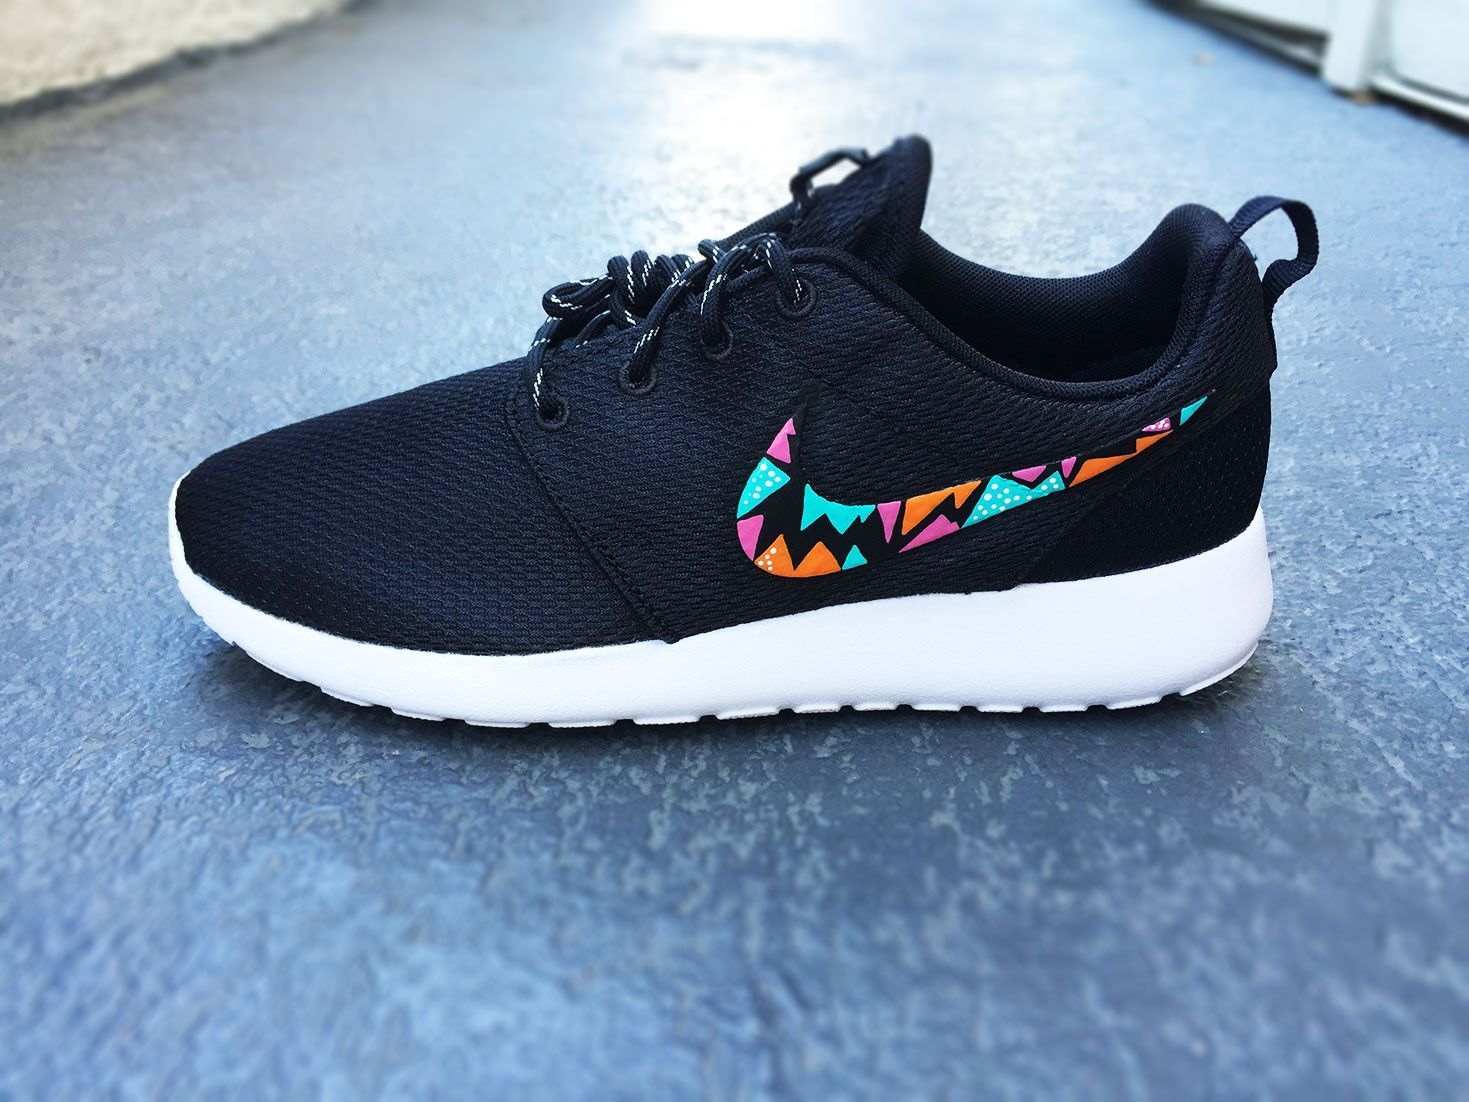 low priced 509f2 2ff49 Womens Custom Nike Roshe Run sneakers, triangle tribal design, hot pink,  teal and orange, trendy fashion design, cute womens shoes